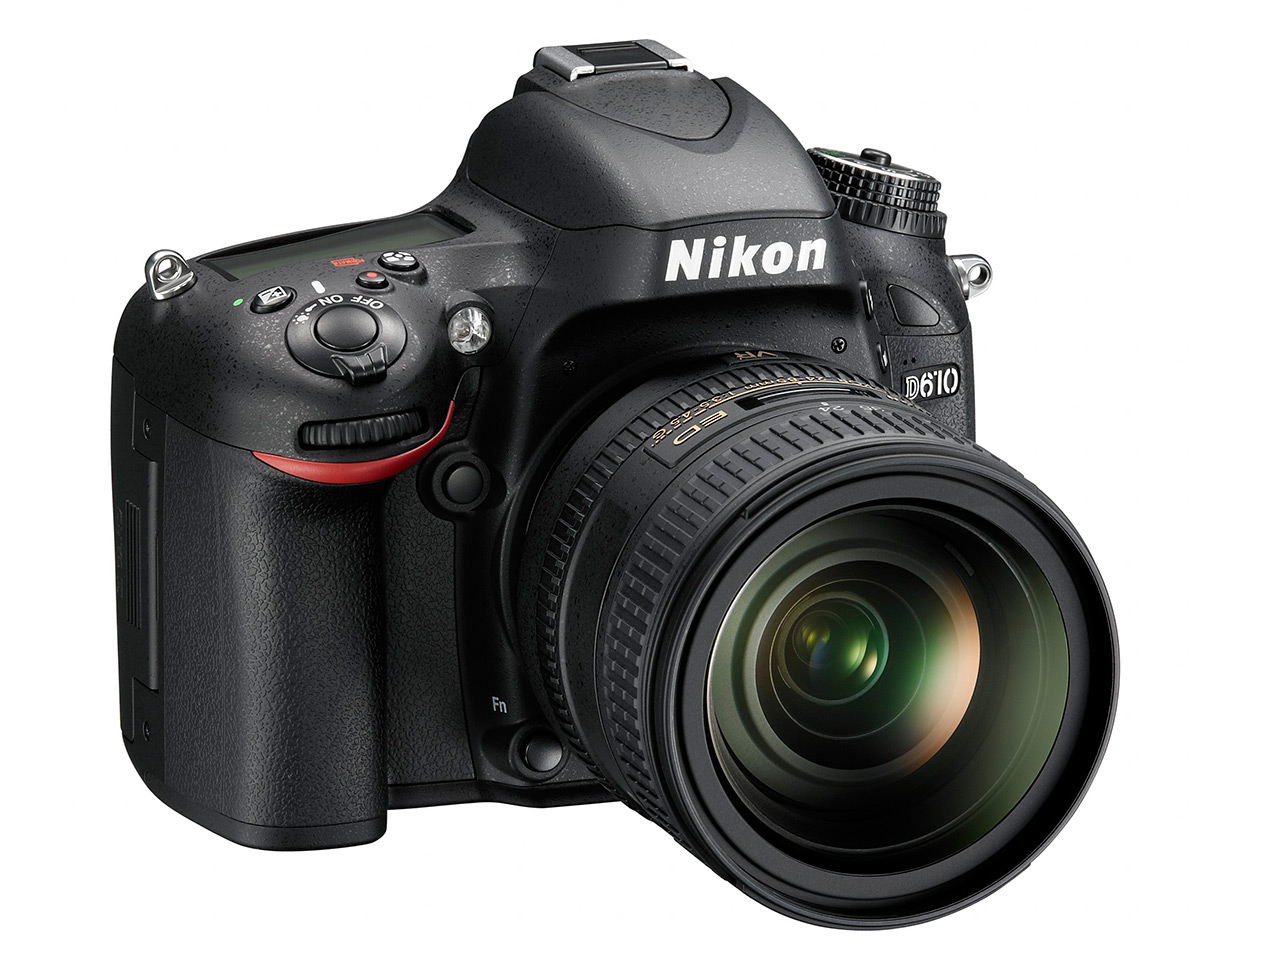 Nikon launches D610 full frame DSLR with updated shutter